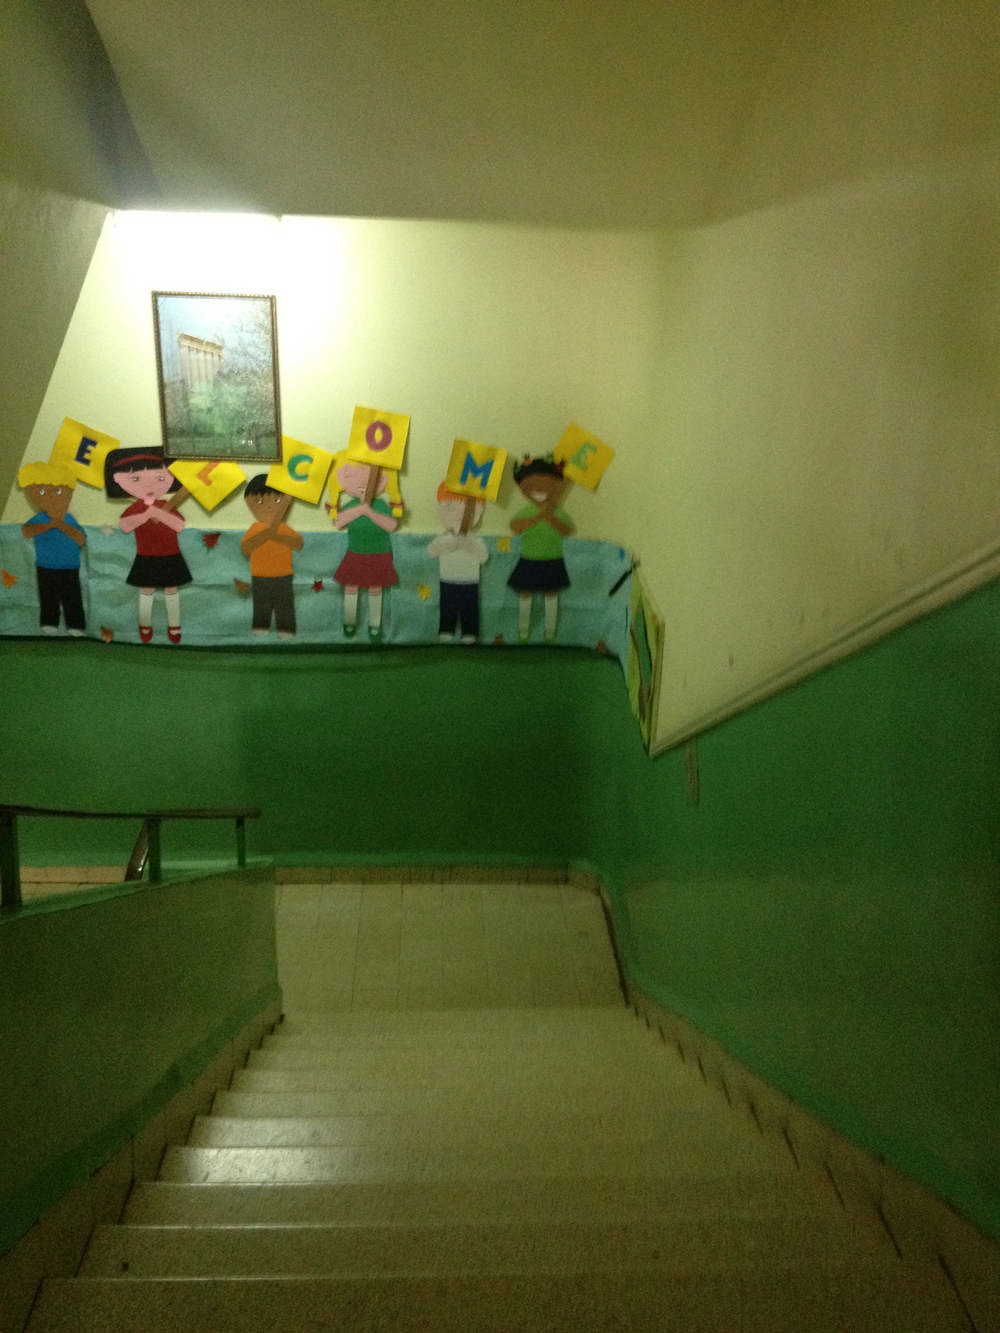 Syrian primary school for refugee children, Tripoli (North Lebanon). Photo taken by Estella Carpi, 2013.